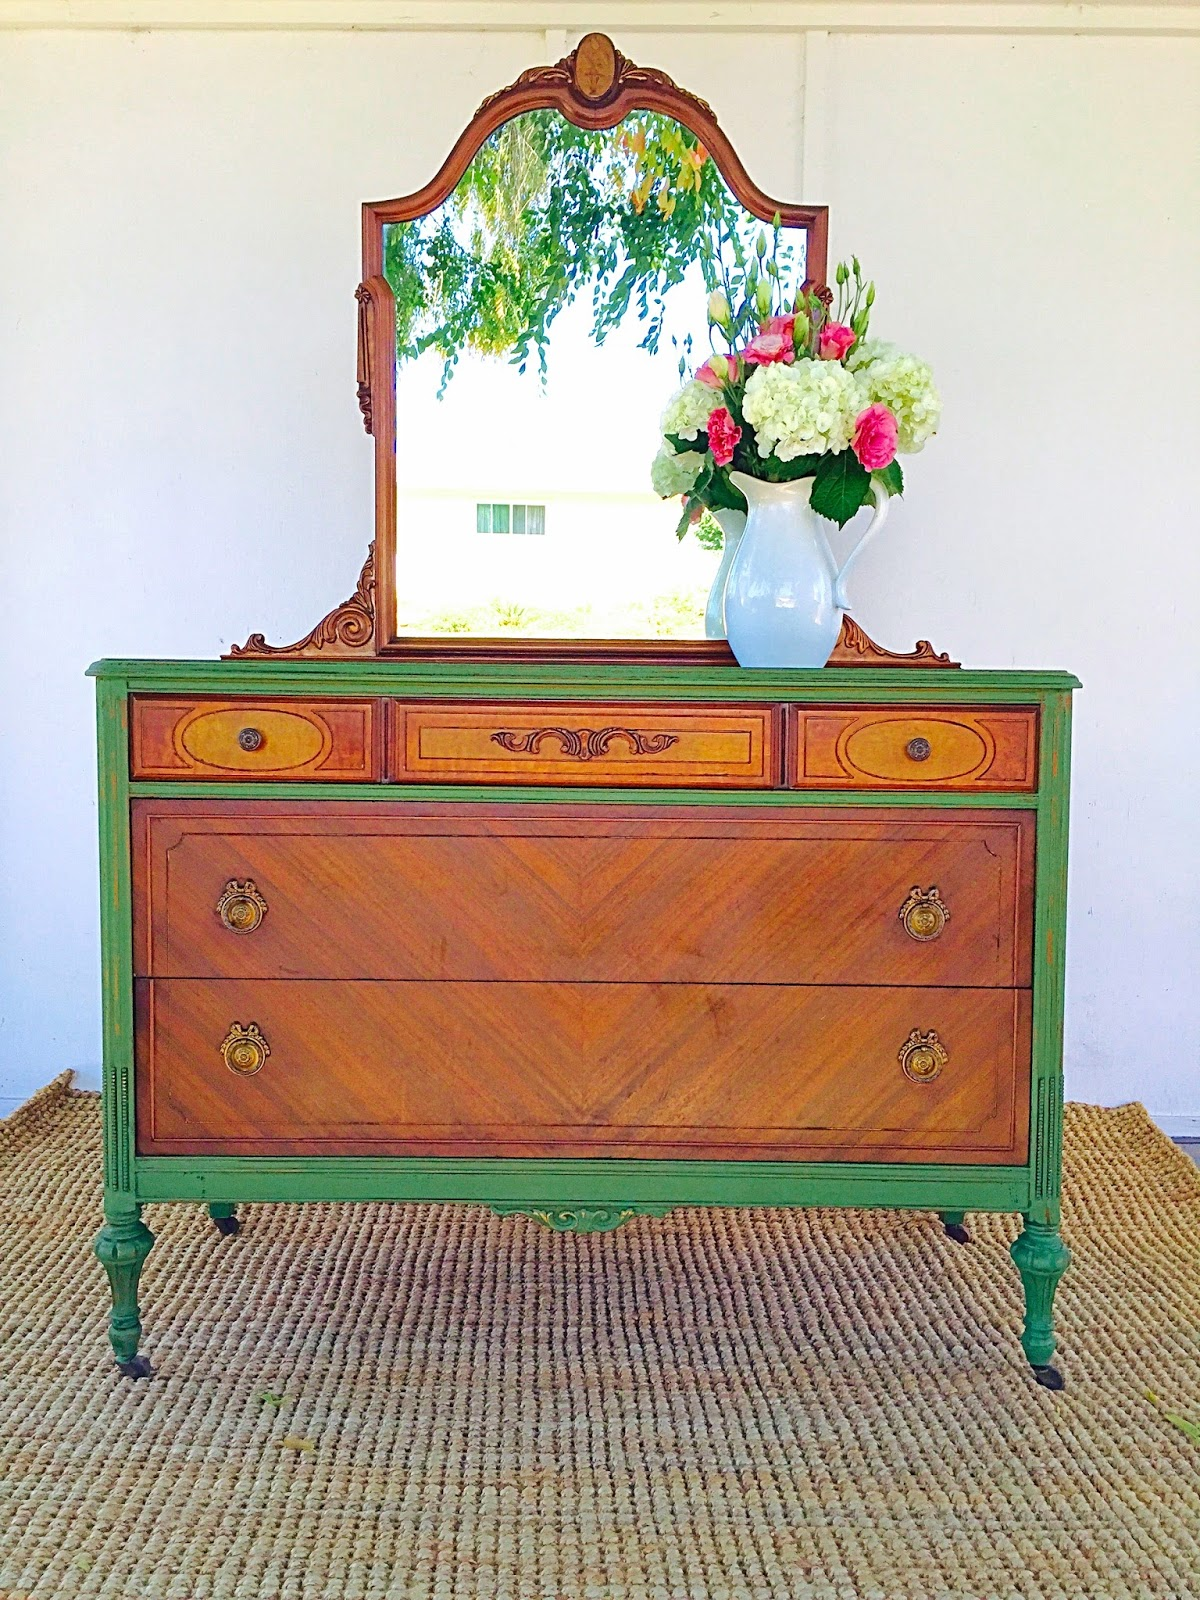 D d 39 s cottage and design vibrant green milk paint dresser Images of painted furniture